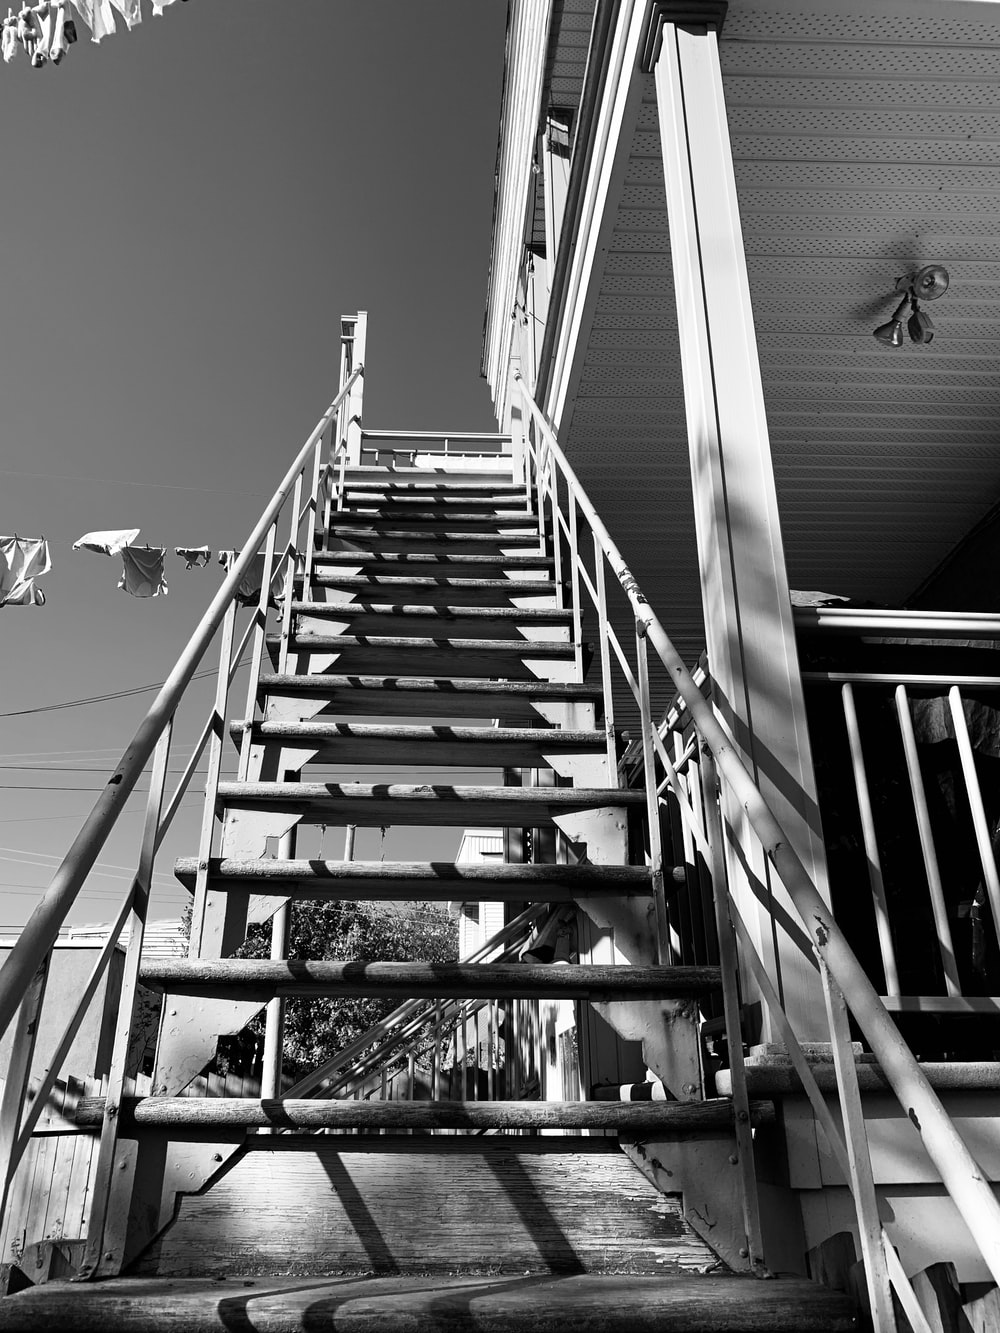 grayscale photo of a staircase